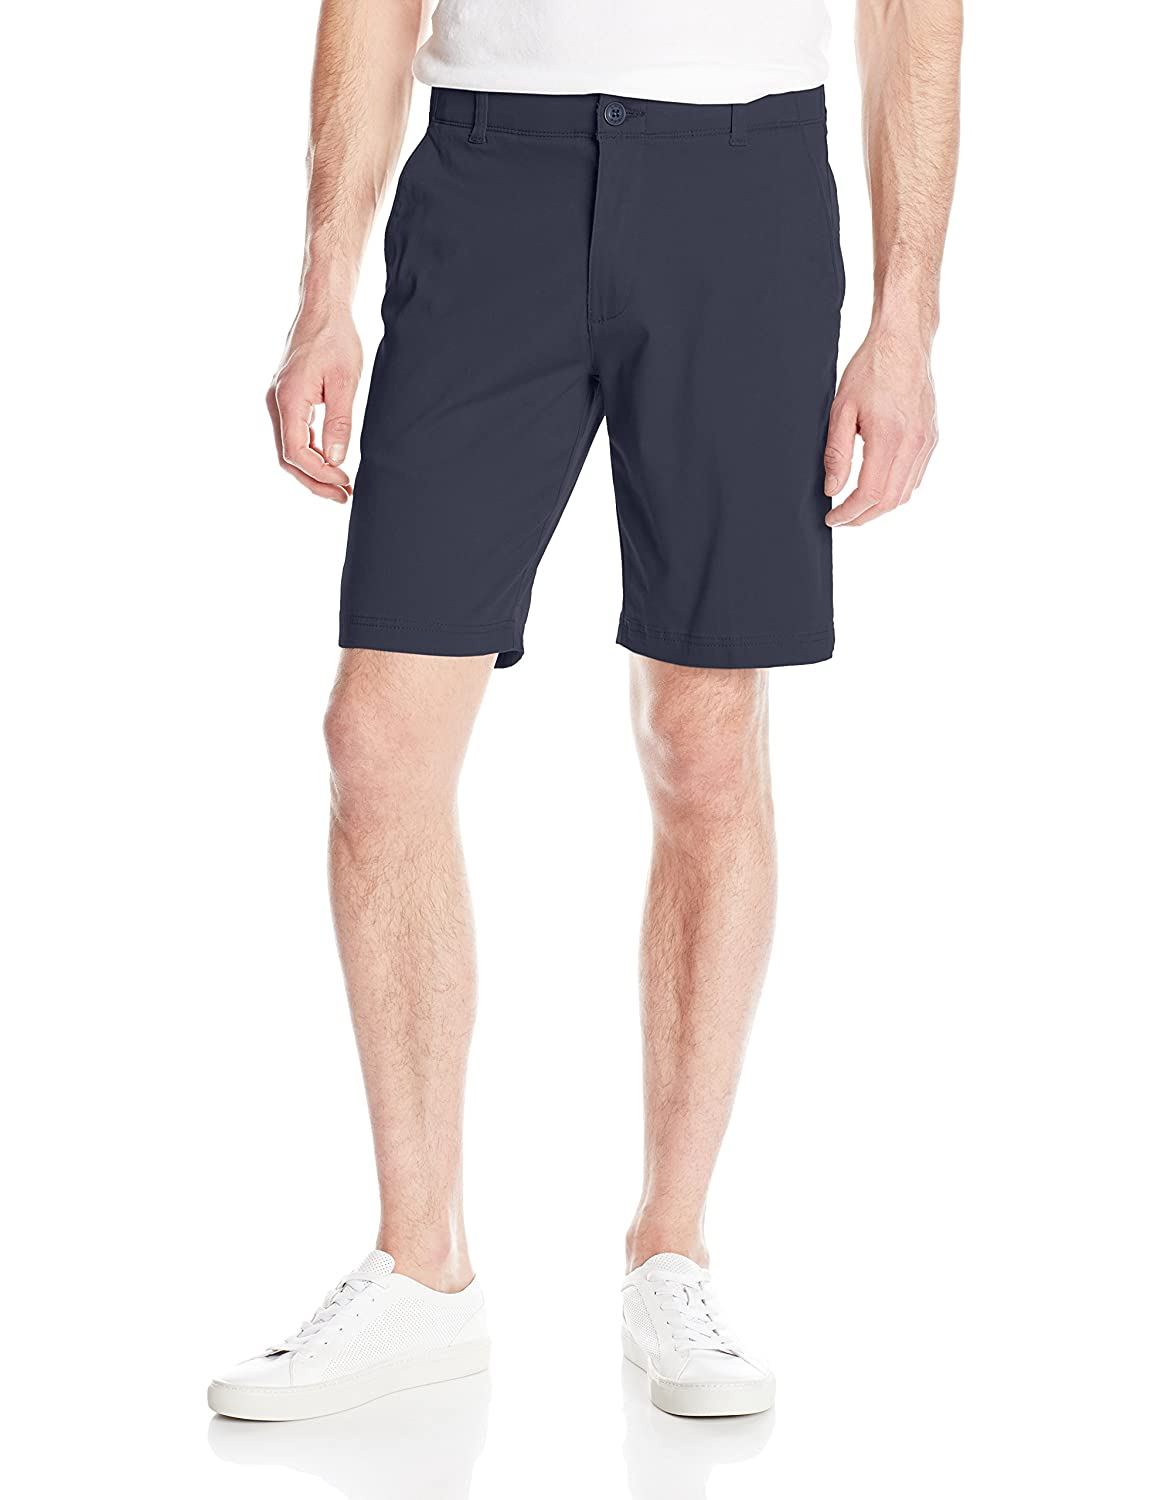 LEE Men's Performance Series Extreme Comfort Short Lee Men's Sportswear 41835